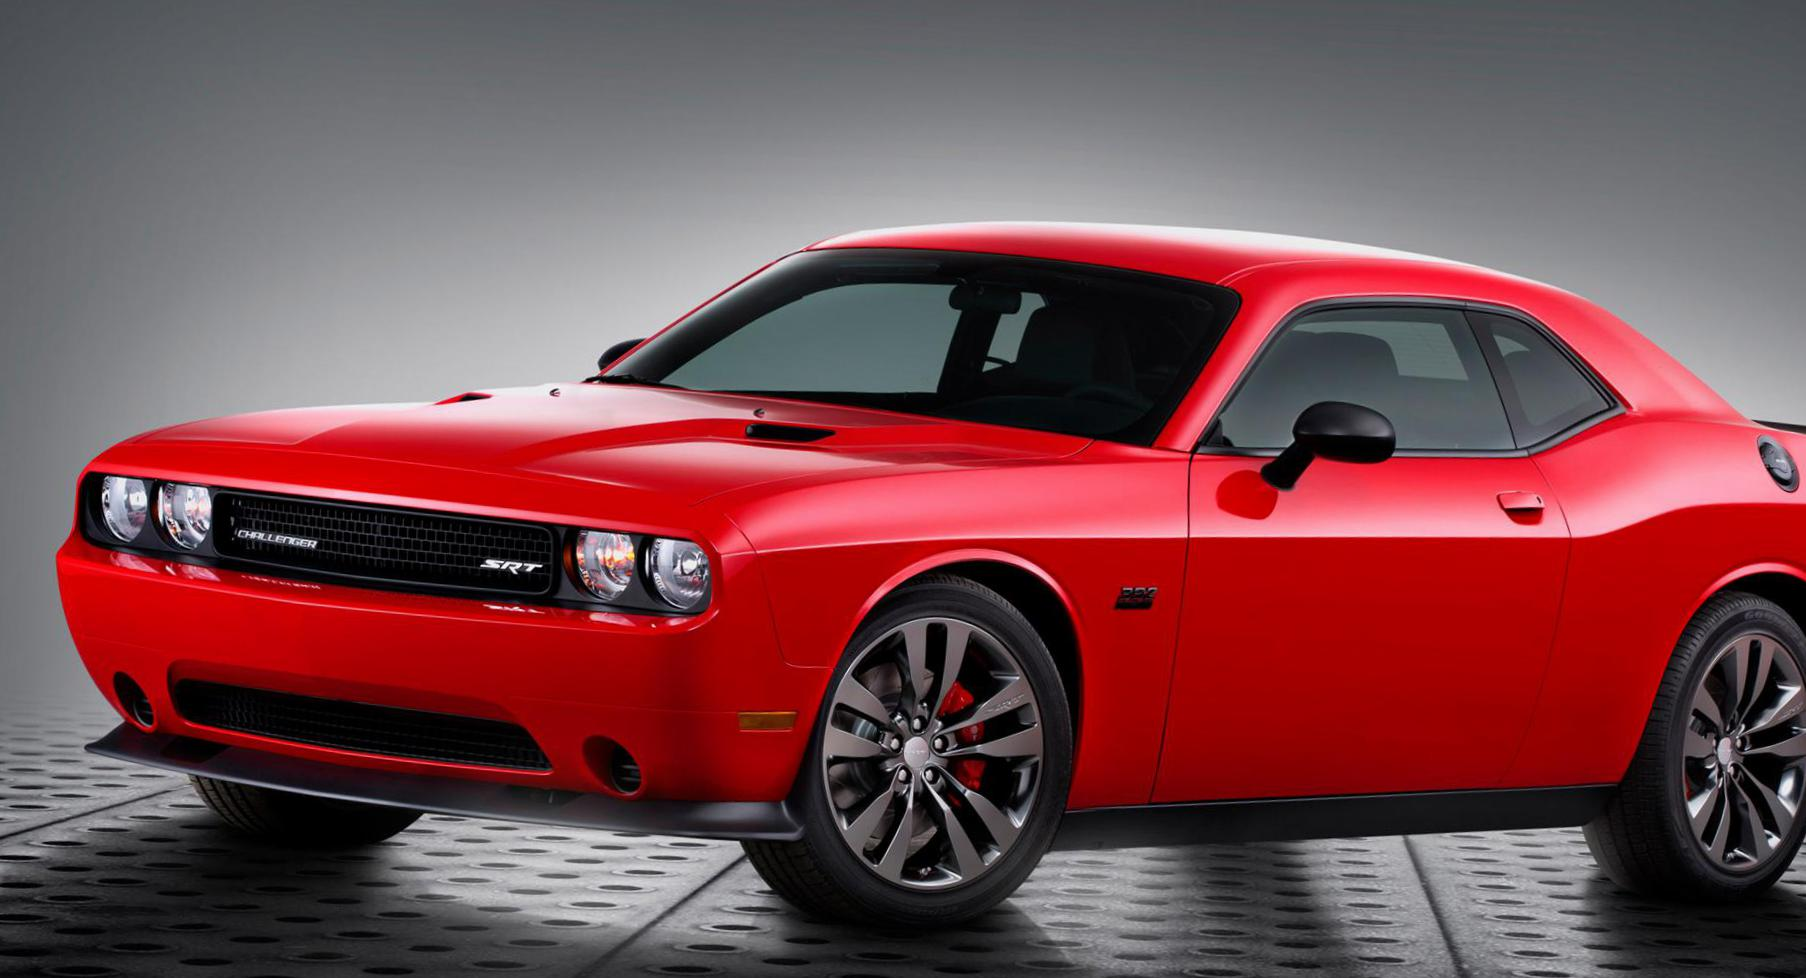 Dodge Challenger price coupe